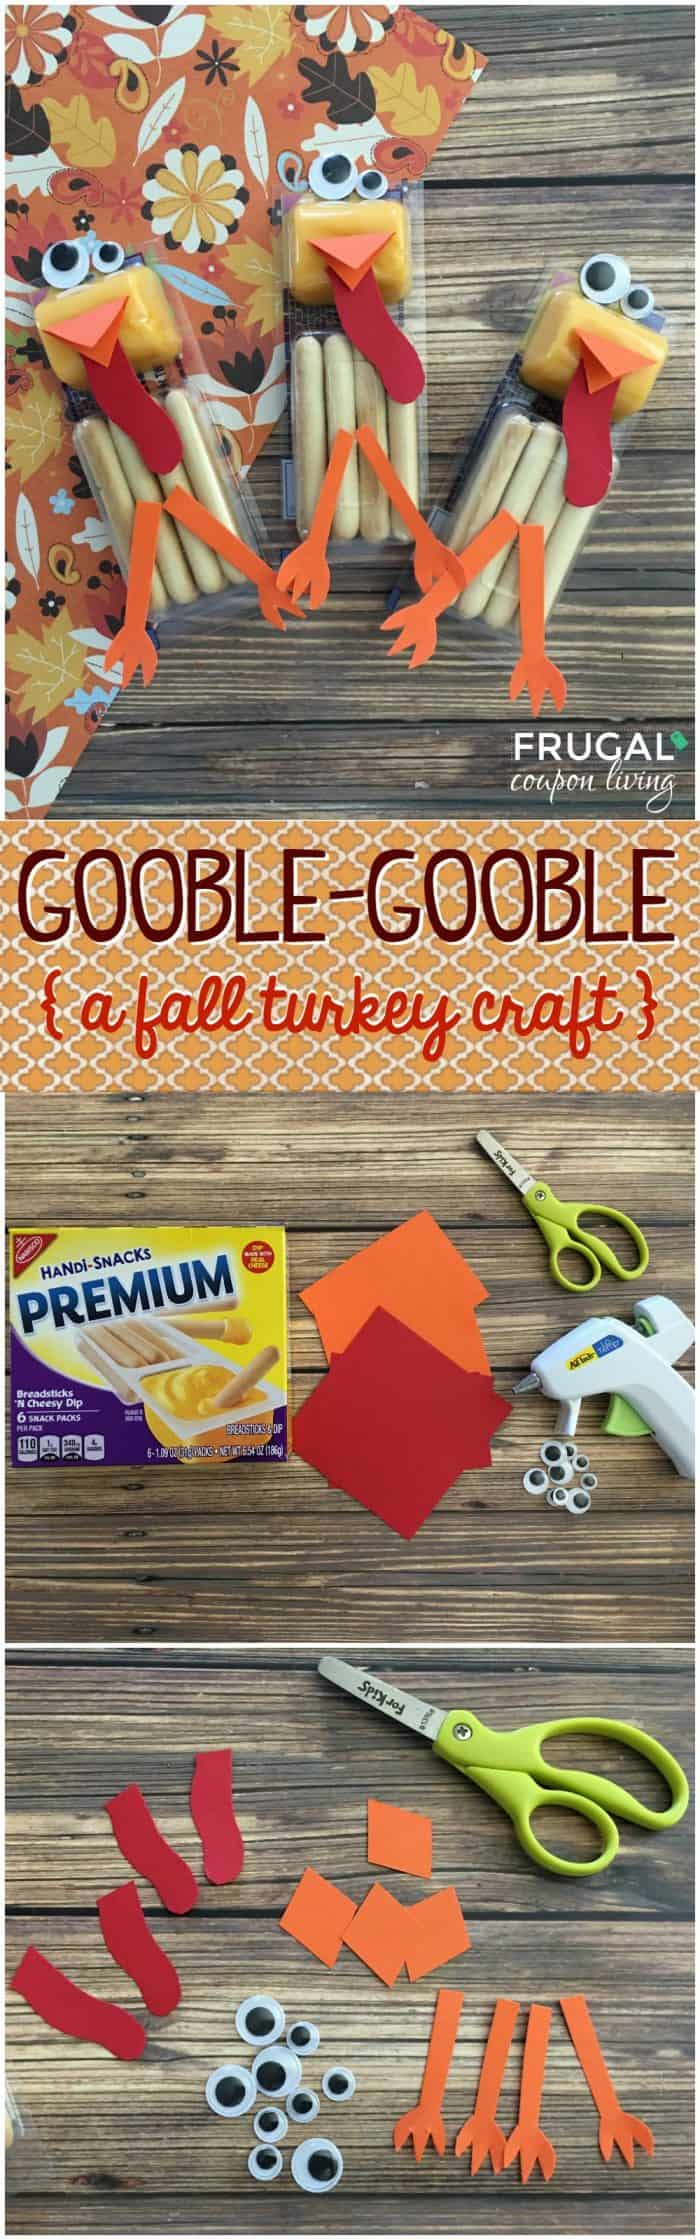 turkey-cheese-sticks-frugal-coupon-living-fb-long